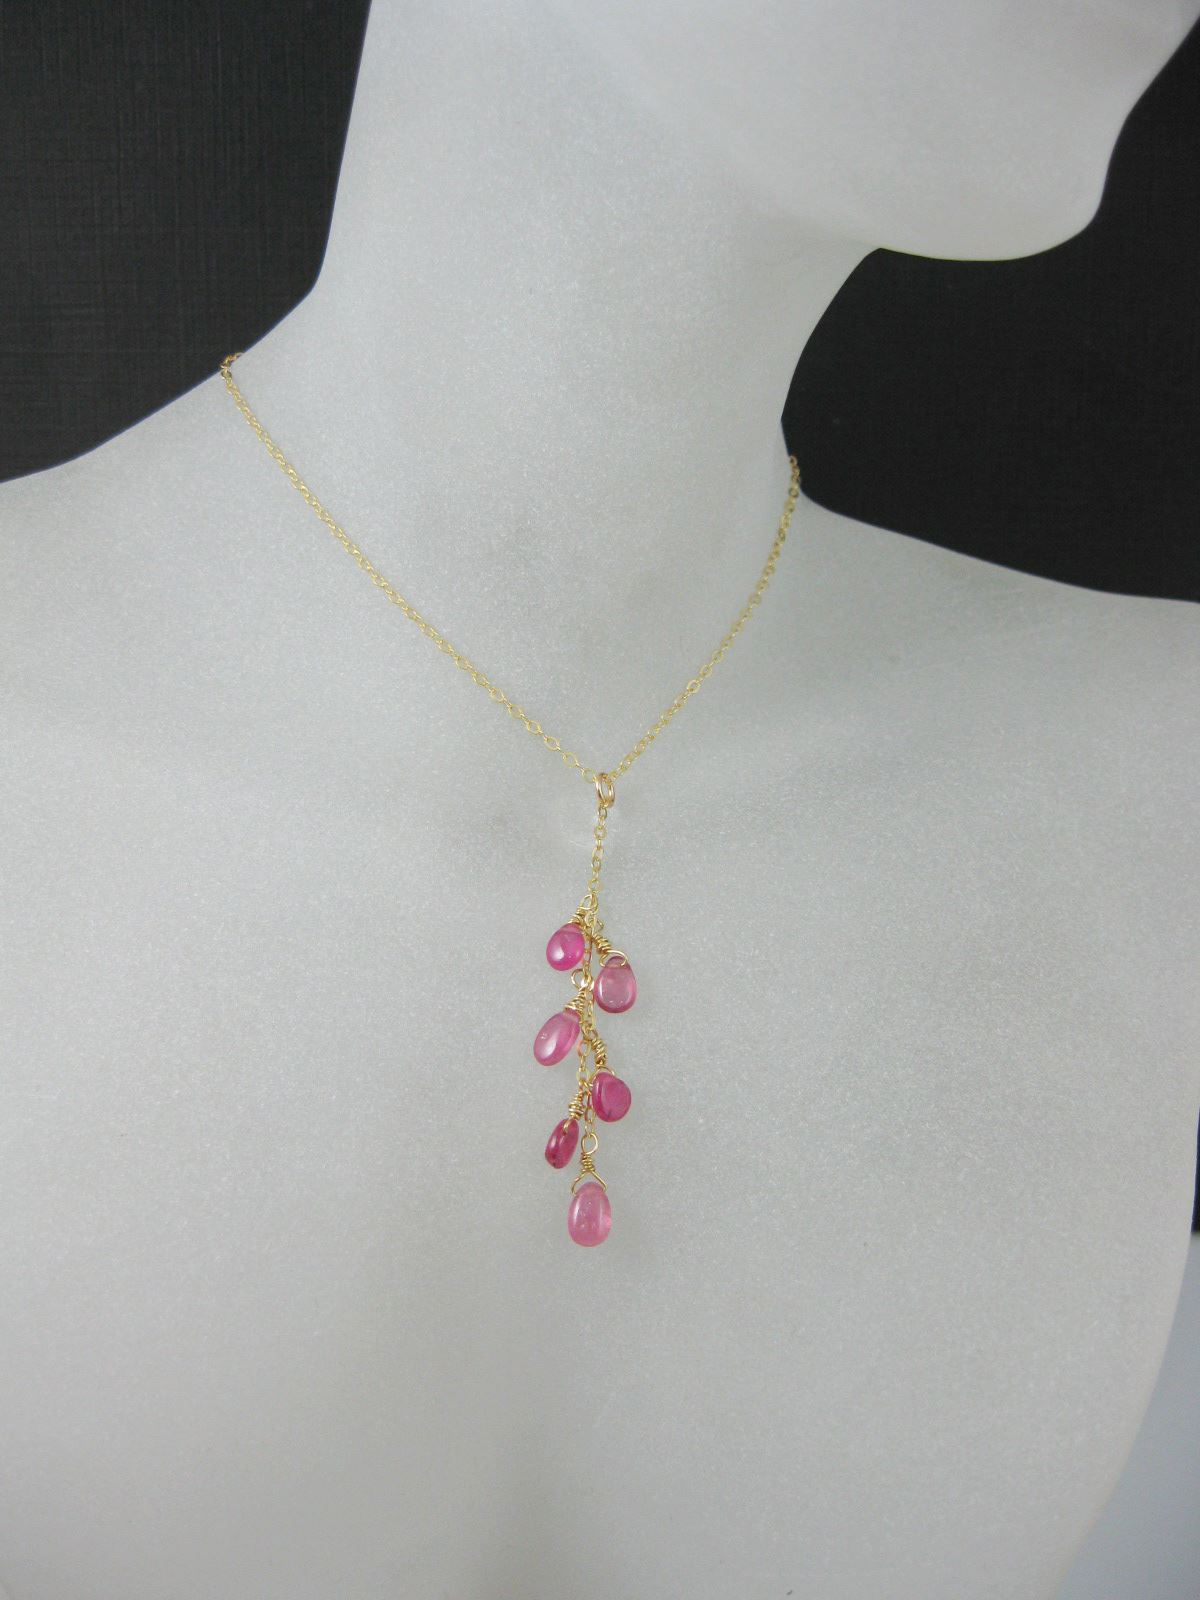 18k Gold plated Necklace -Hot pink Sapphire Necklace - Everyday Wear- Wedding ,Bridal -September Birthstone